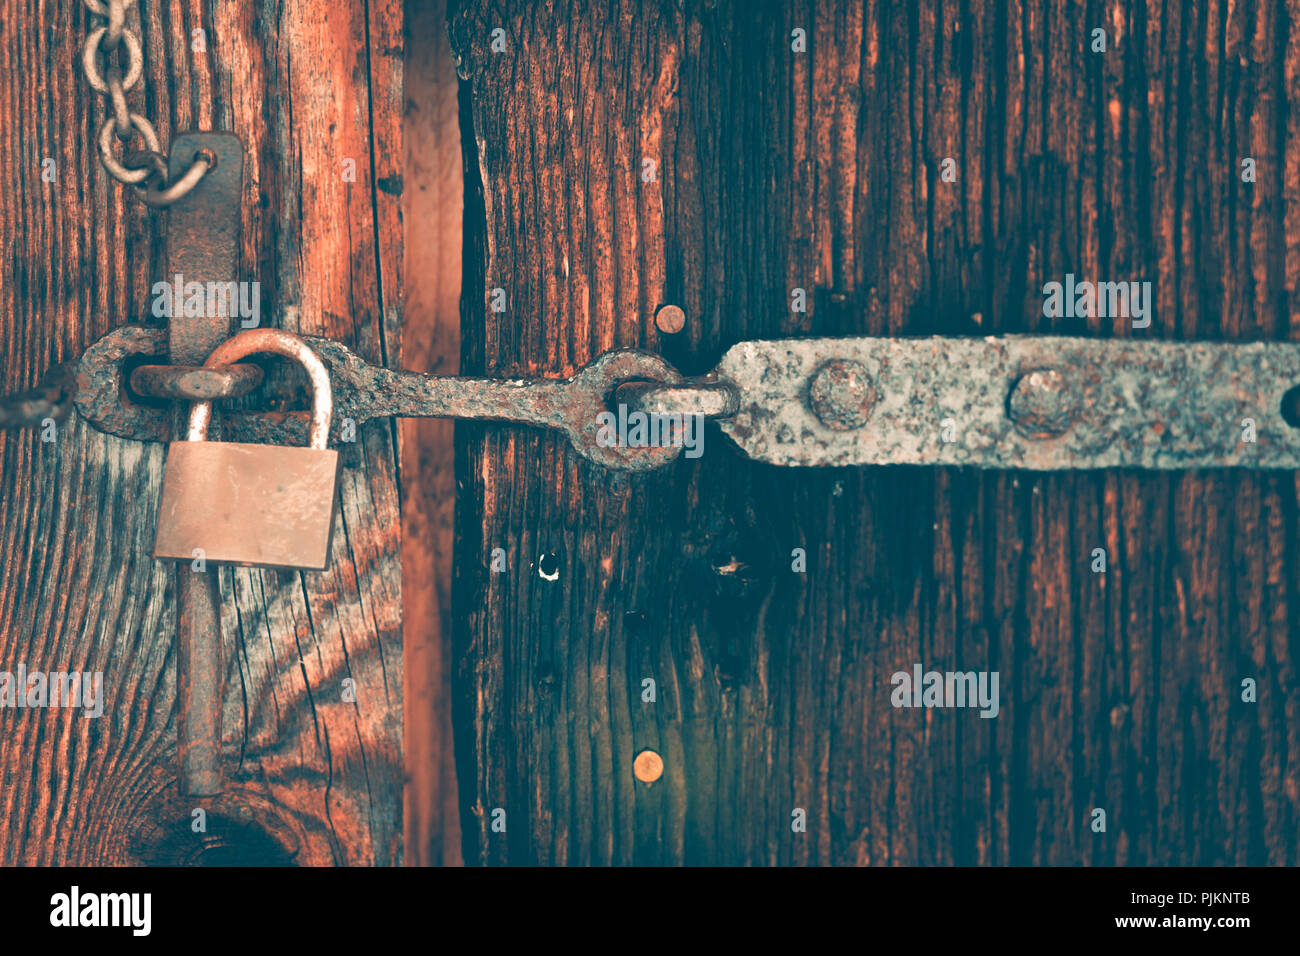 A wooden door is secured with a latch and a padlock, - Stock Image